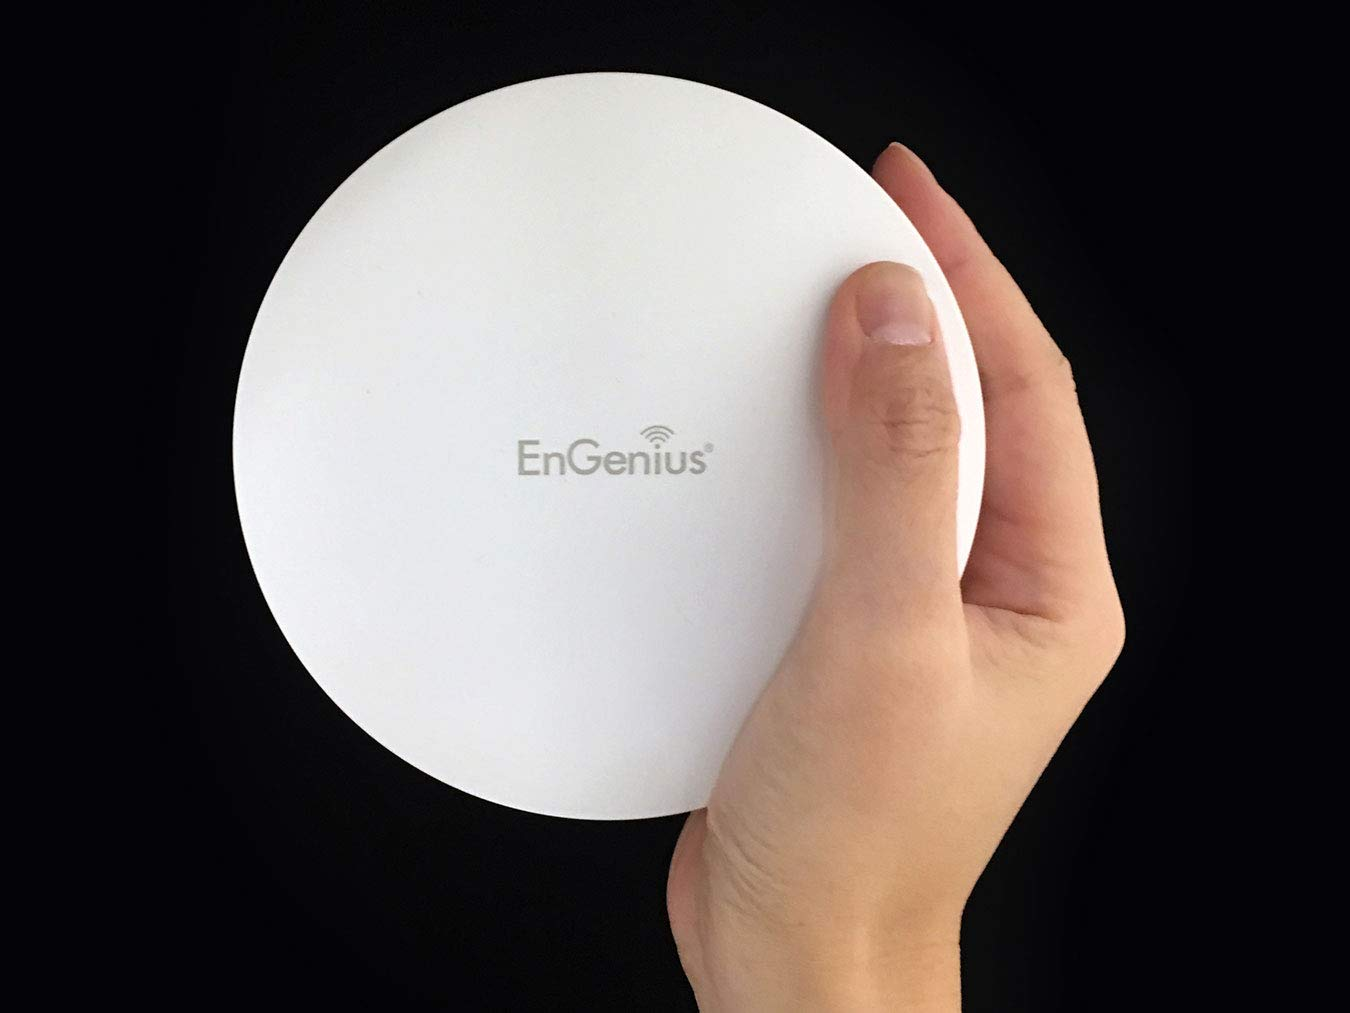 EnGenius Technologies EAP1250 802.11ac Wave 2 Concurrent Dual-band, Standard PoE, Compact size Indoor Wireless Access Point by EnGenius